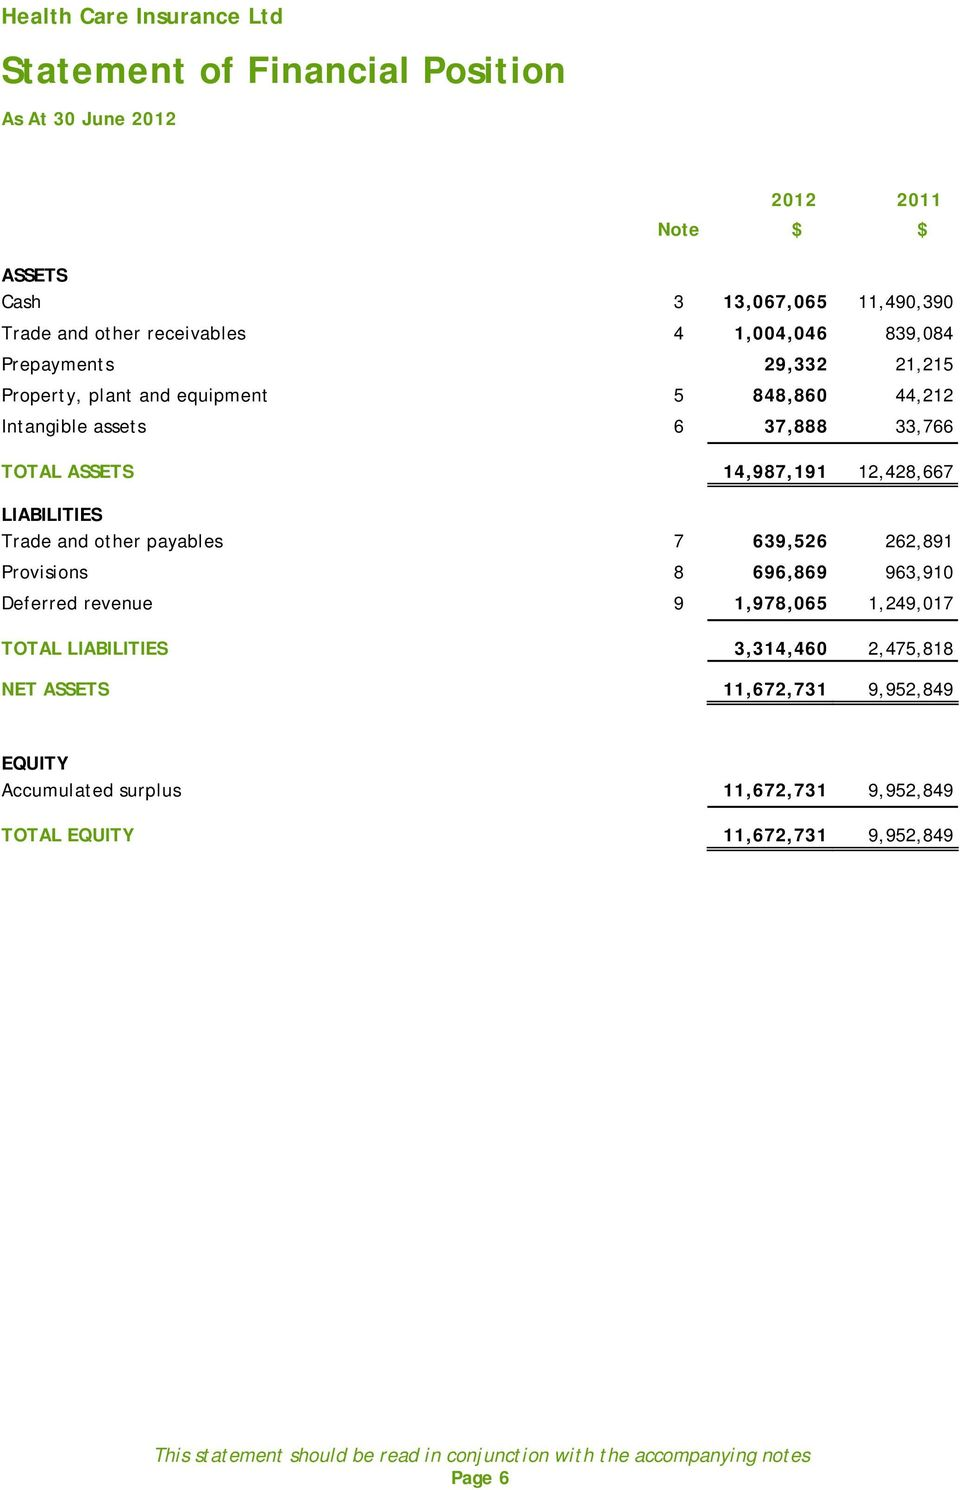 payables 7 639,526 262,891 Provisions 8 696,869 963,910 Deferred revenue 9 1,978,065 1,249,017 TOTAL LIABILITIES 3,314,460 2,475,818 NET ASSETS 11,672,731